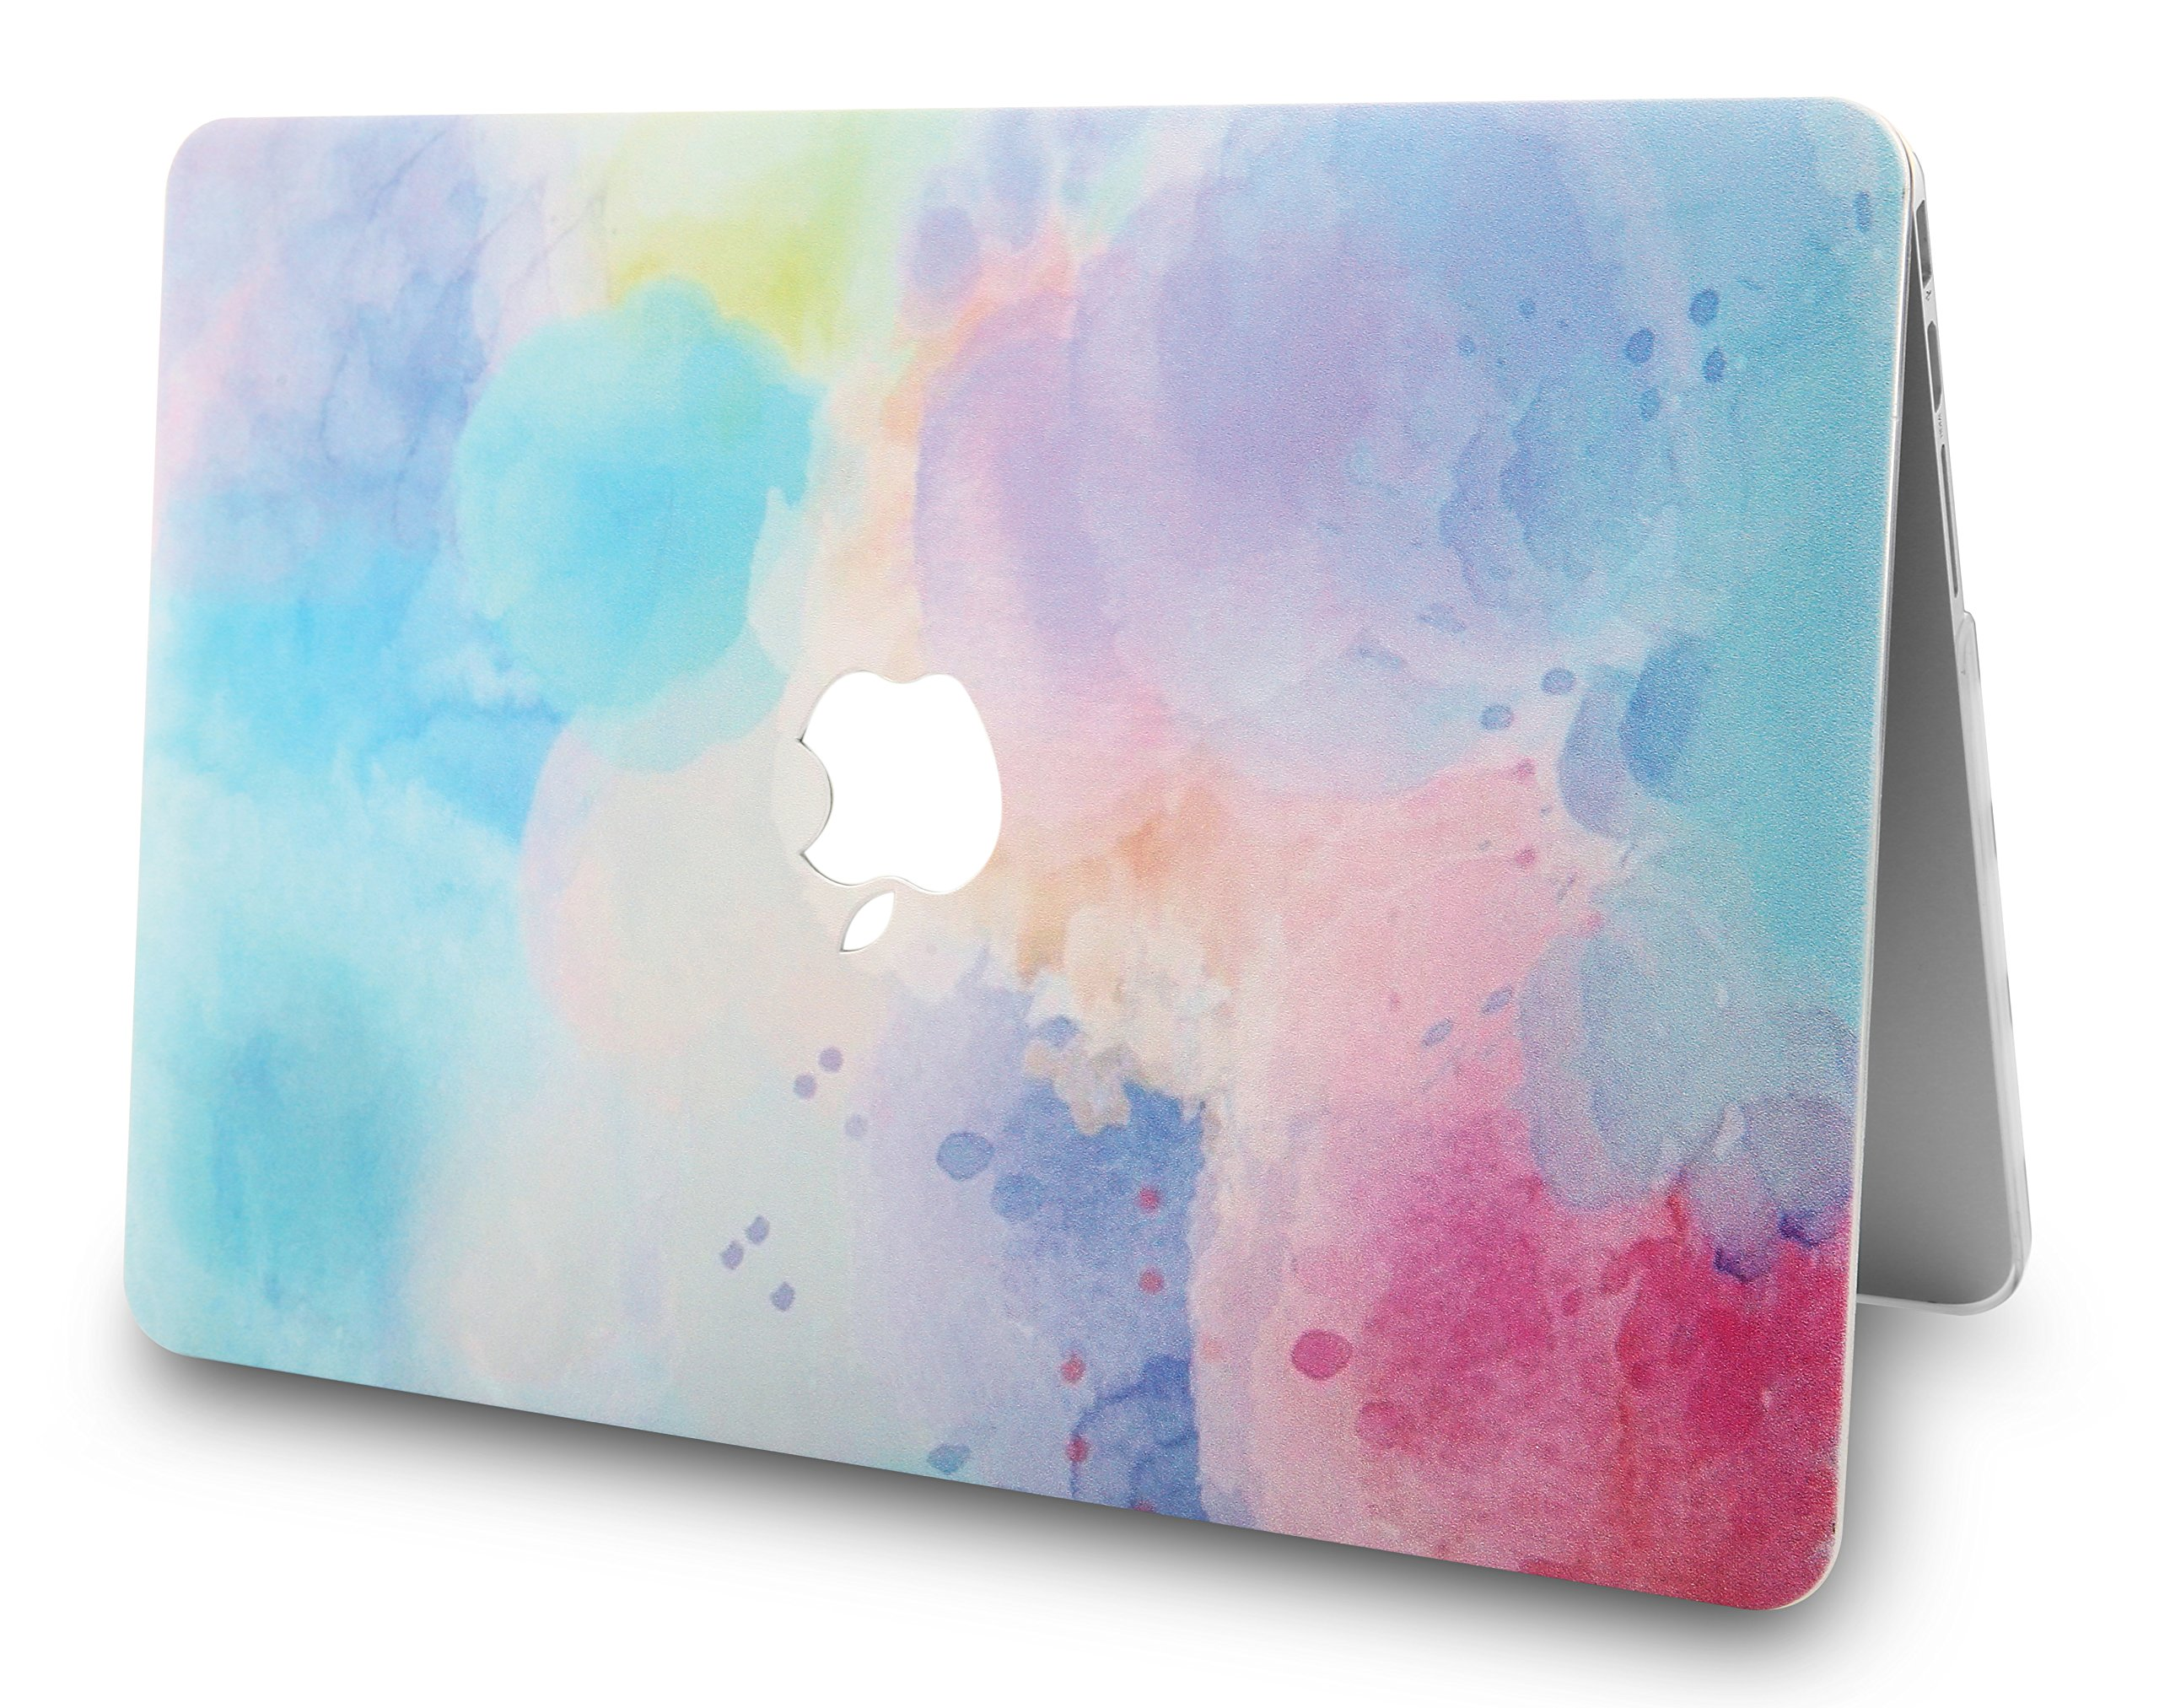 KEC Laptop Case for MacBook Air 13'' w/ Keyboard Cover + Sleeve Plastic Hard Shell Case A1466/A1369  3 in Bundle (Rainbow Mist 2)  by KEC (Image #4)